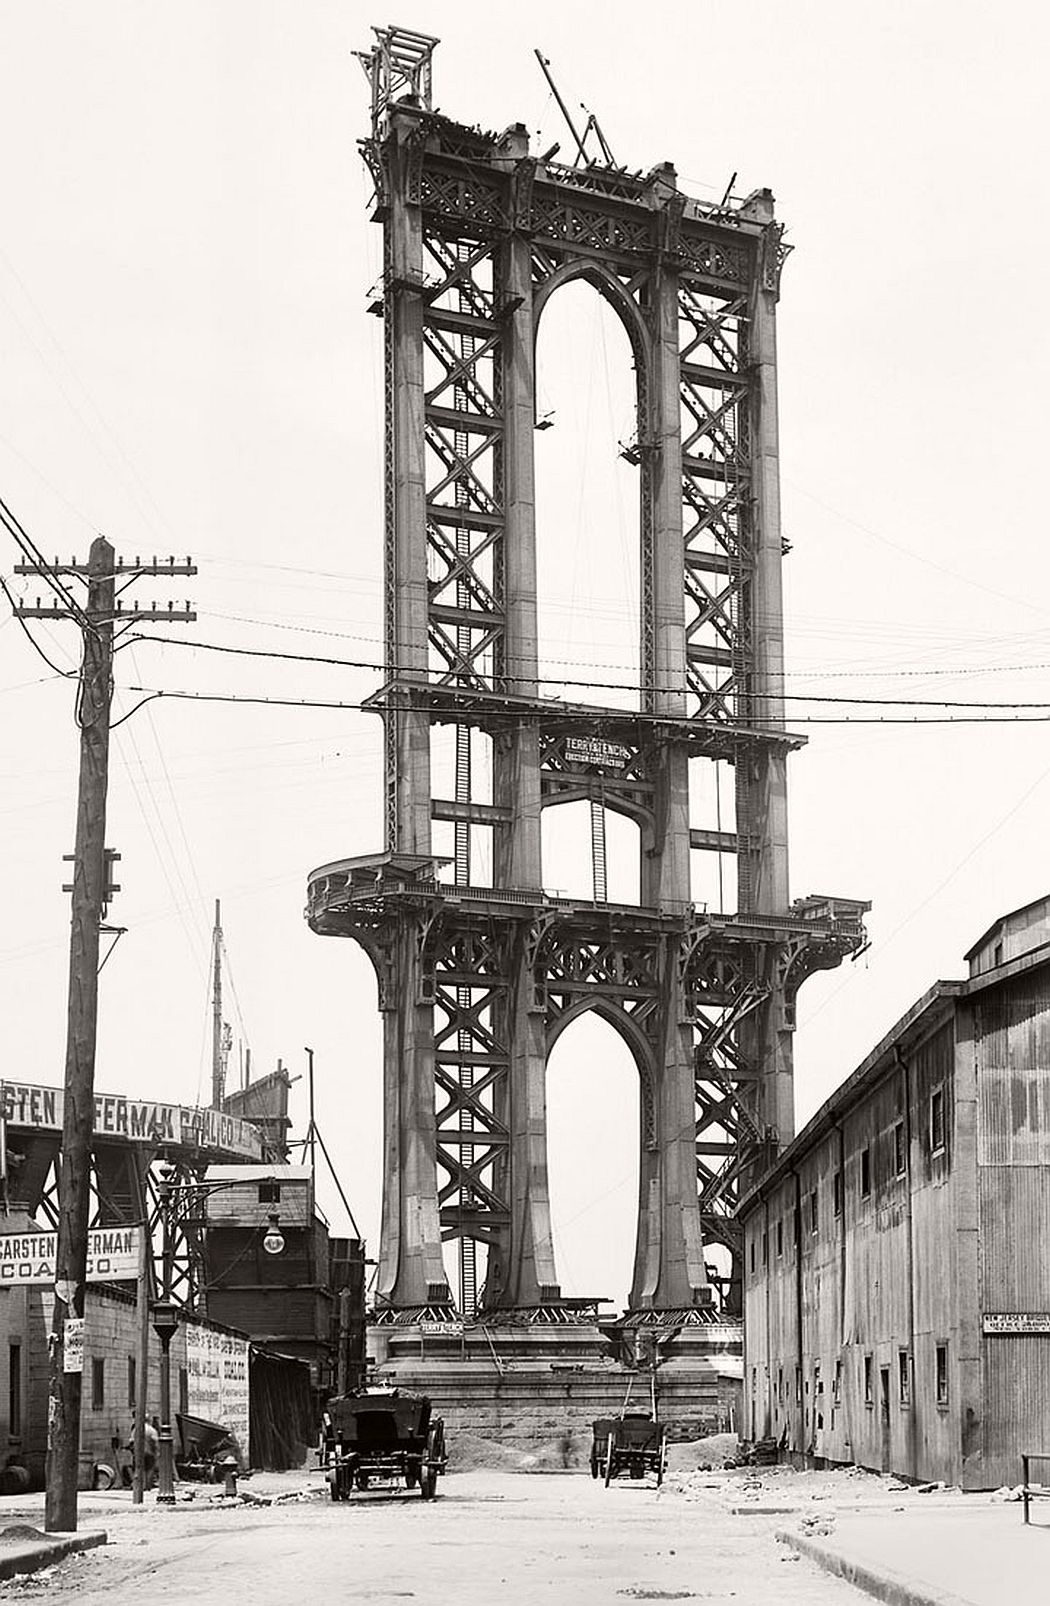 vintage-manhattan-bridge-under-construction-new-york-in-1908-08